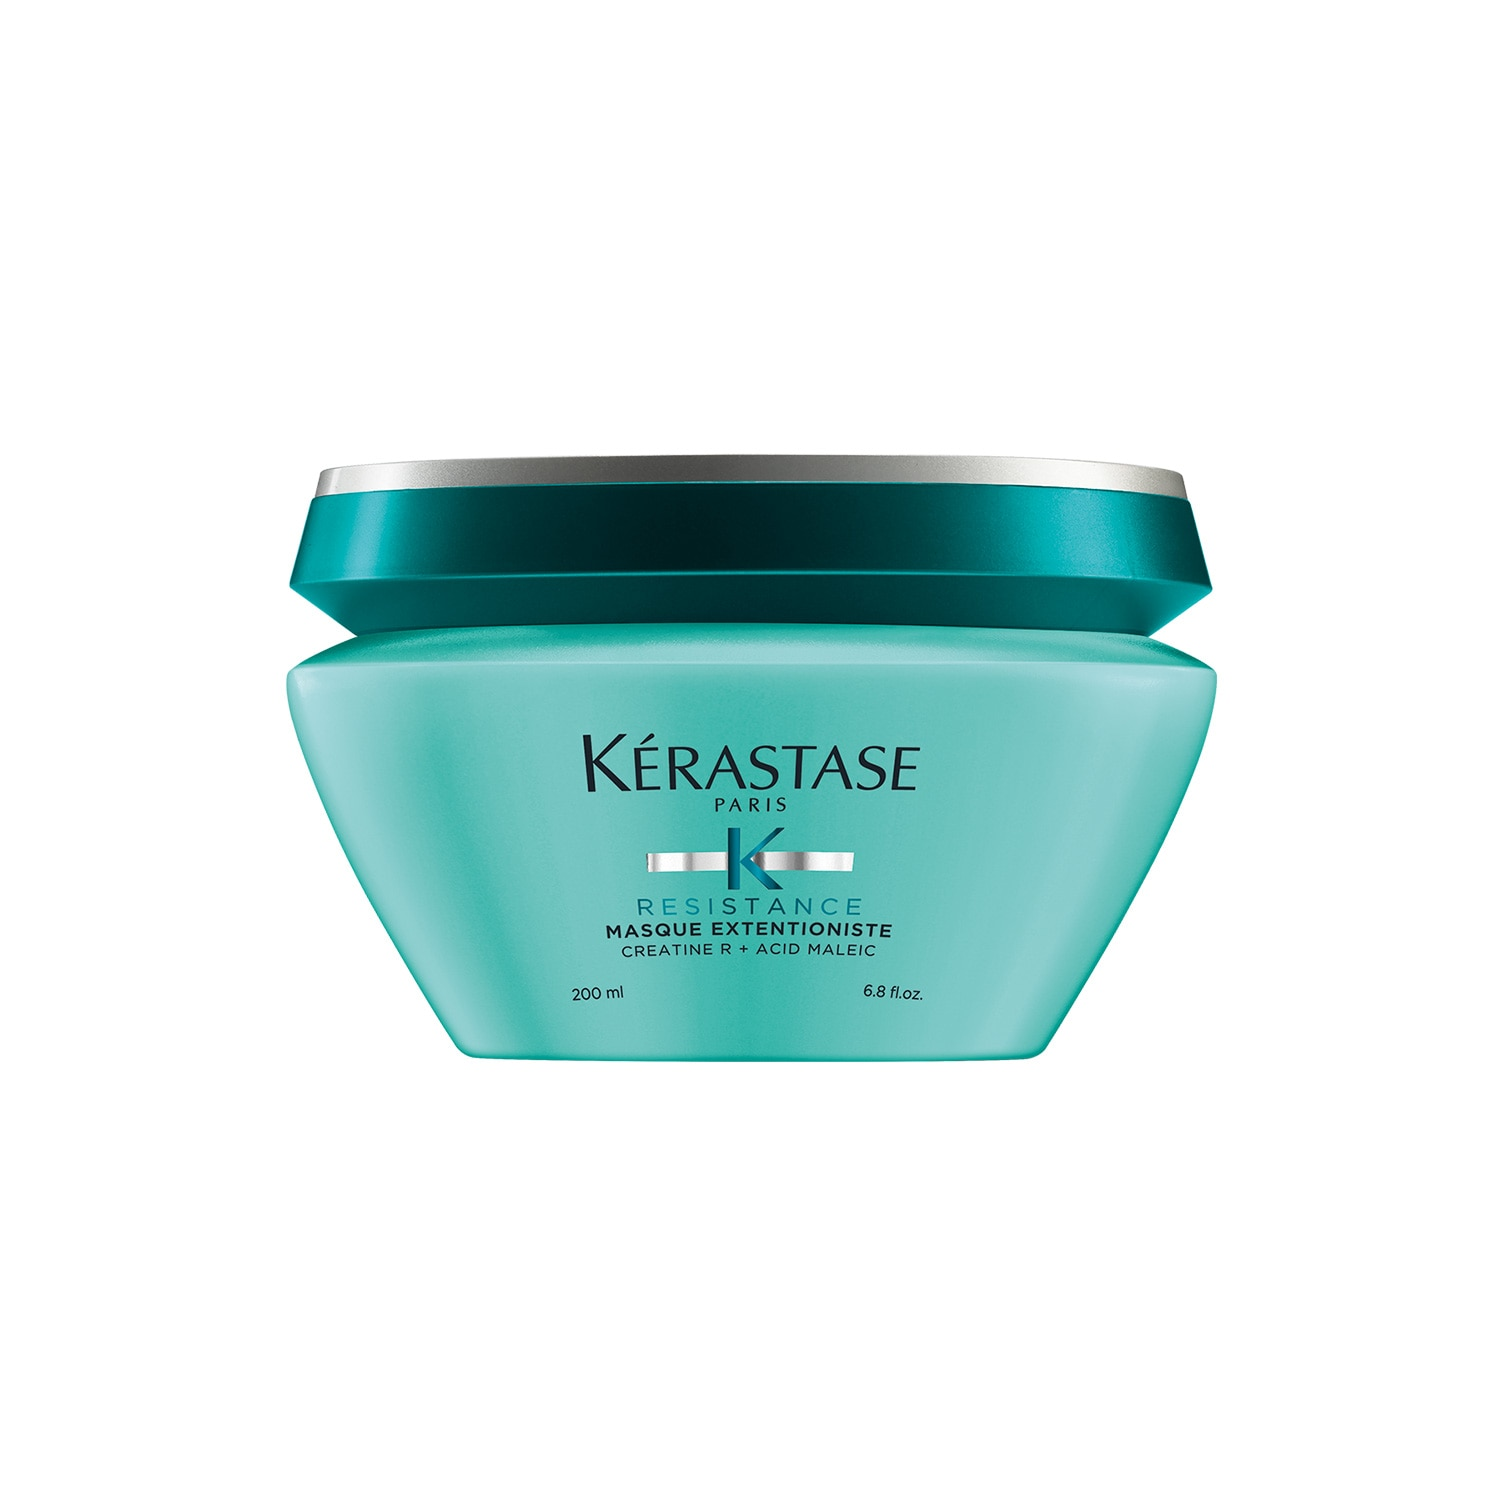 MASQUE EXTENTIONISTE 200 ML  (CABELLO GRUESO DEBILITADO EN BUSCA DE UN LARGO PERFECTO)